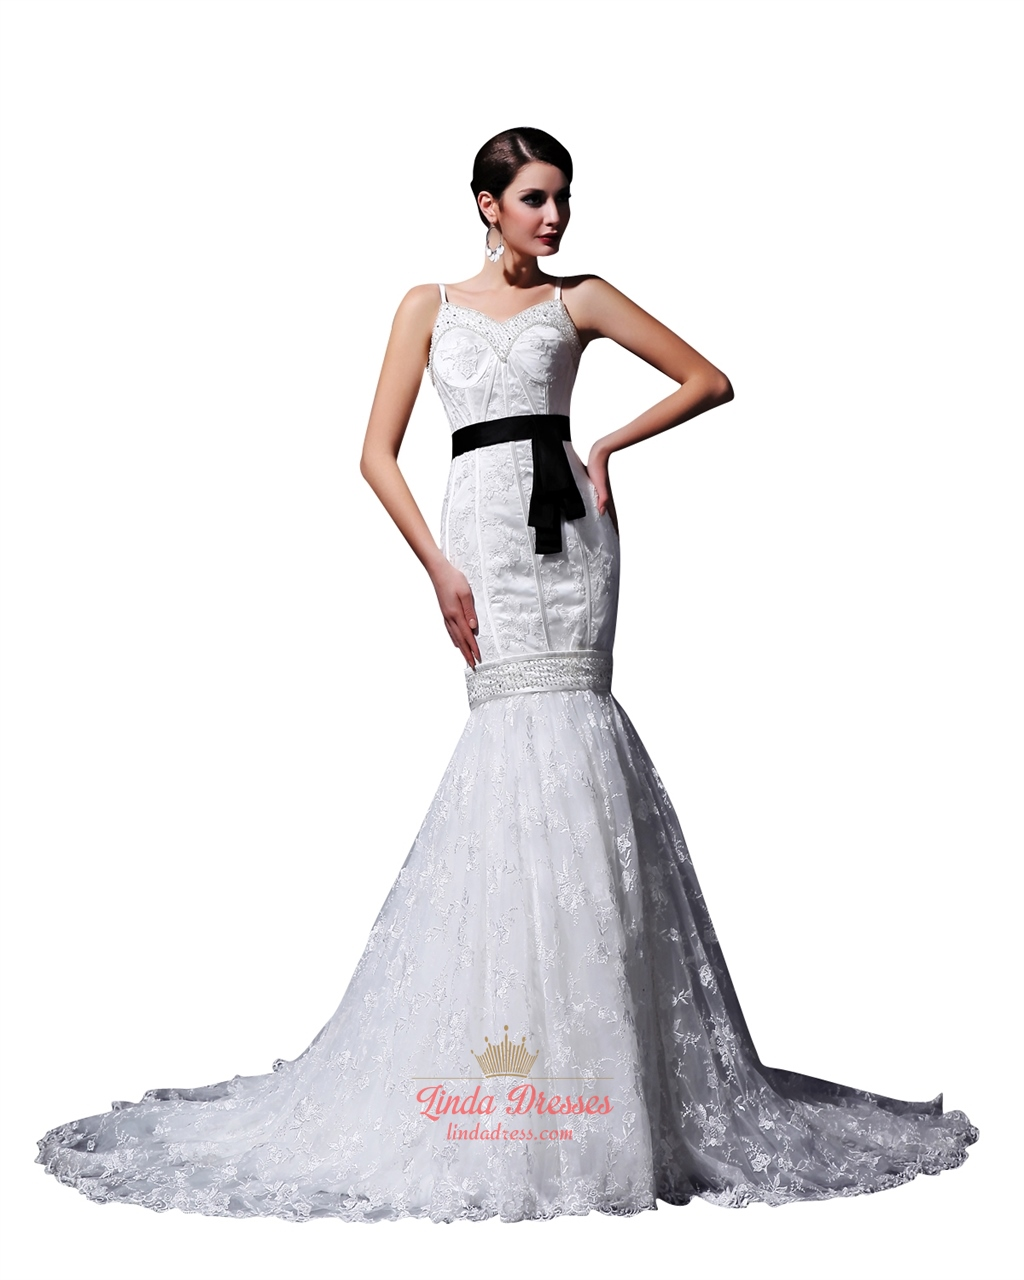 White Mermaid Beaded Spaghetti Strap Wedding Dresses With Black Sash